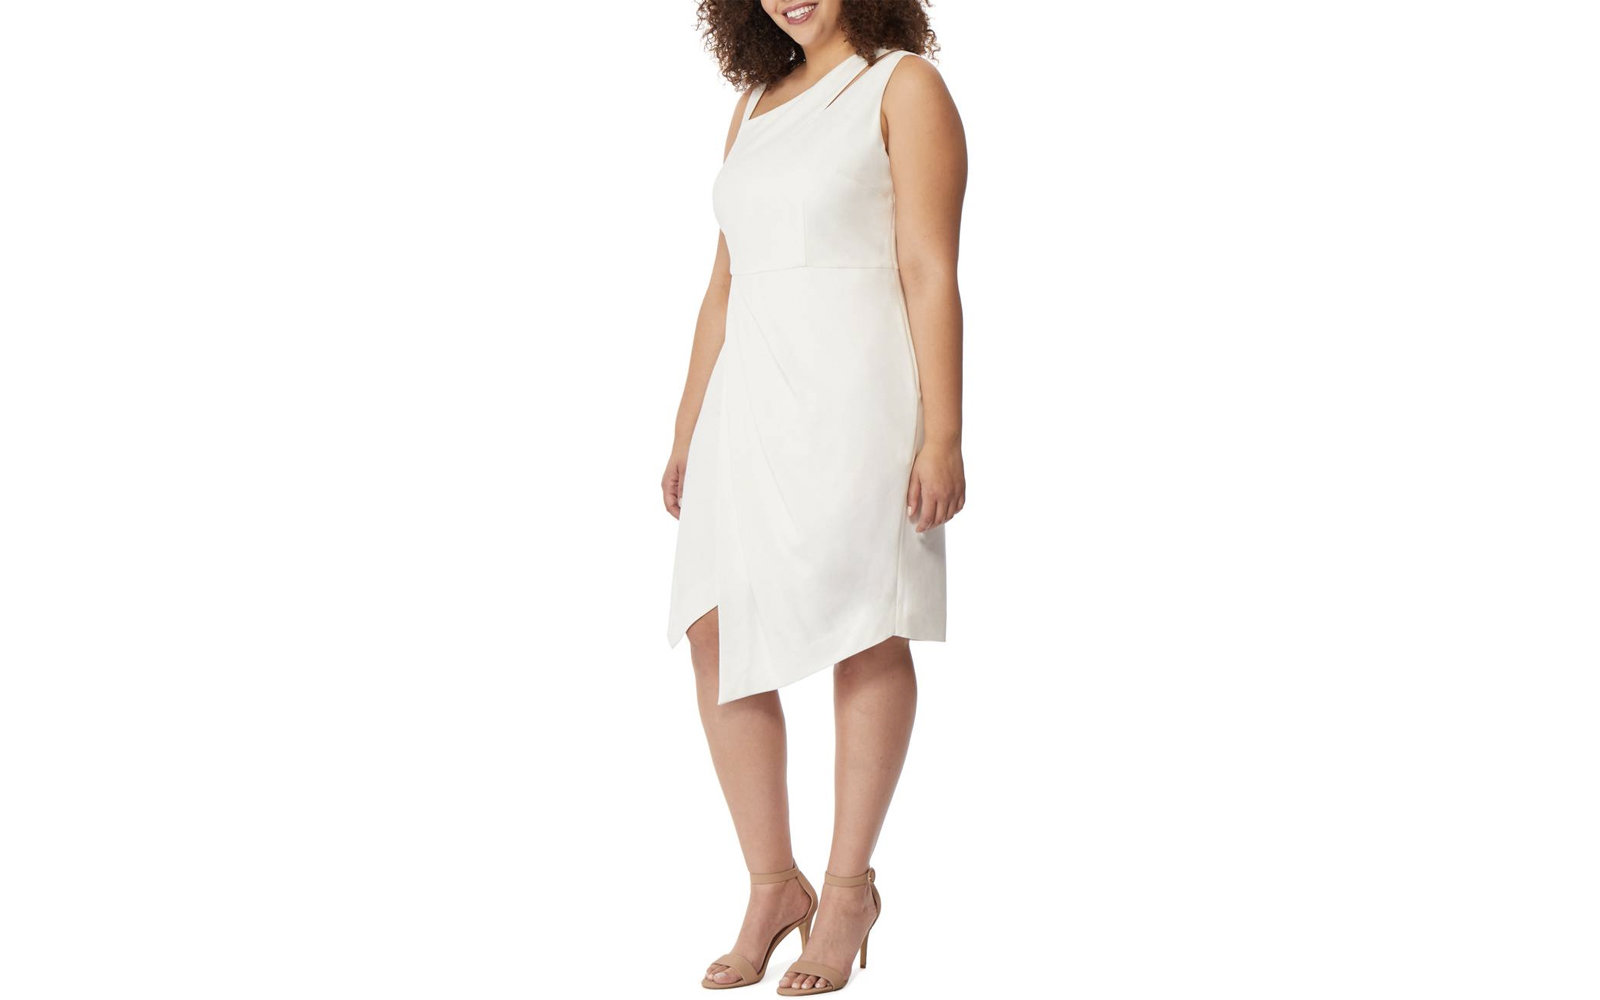 db4e18d29e Nordstrom s Half-yearly Sale Has so Many Perfect Summer Dresses ...